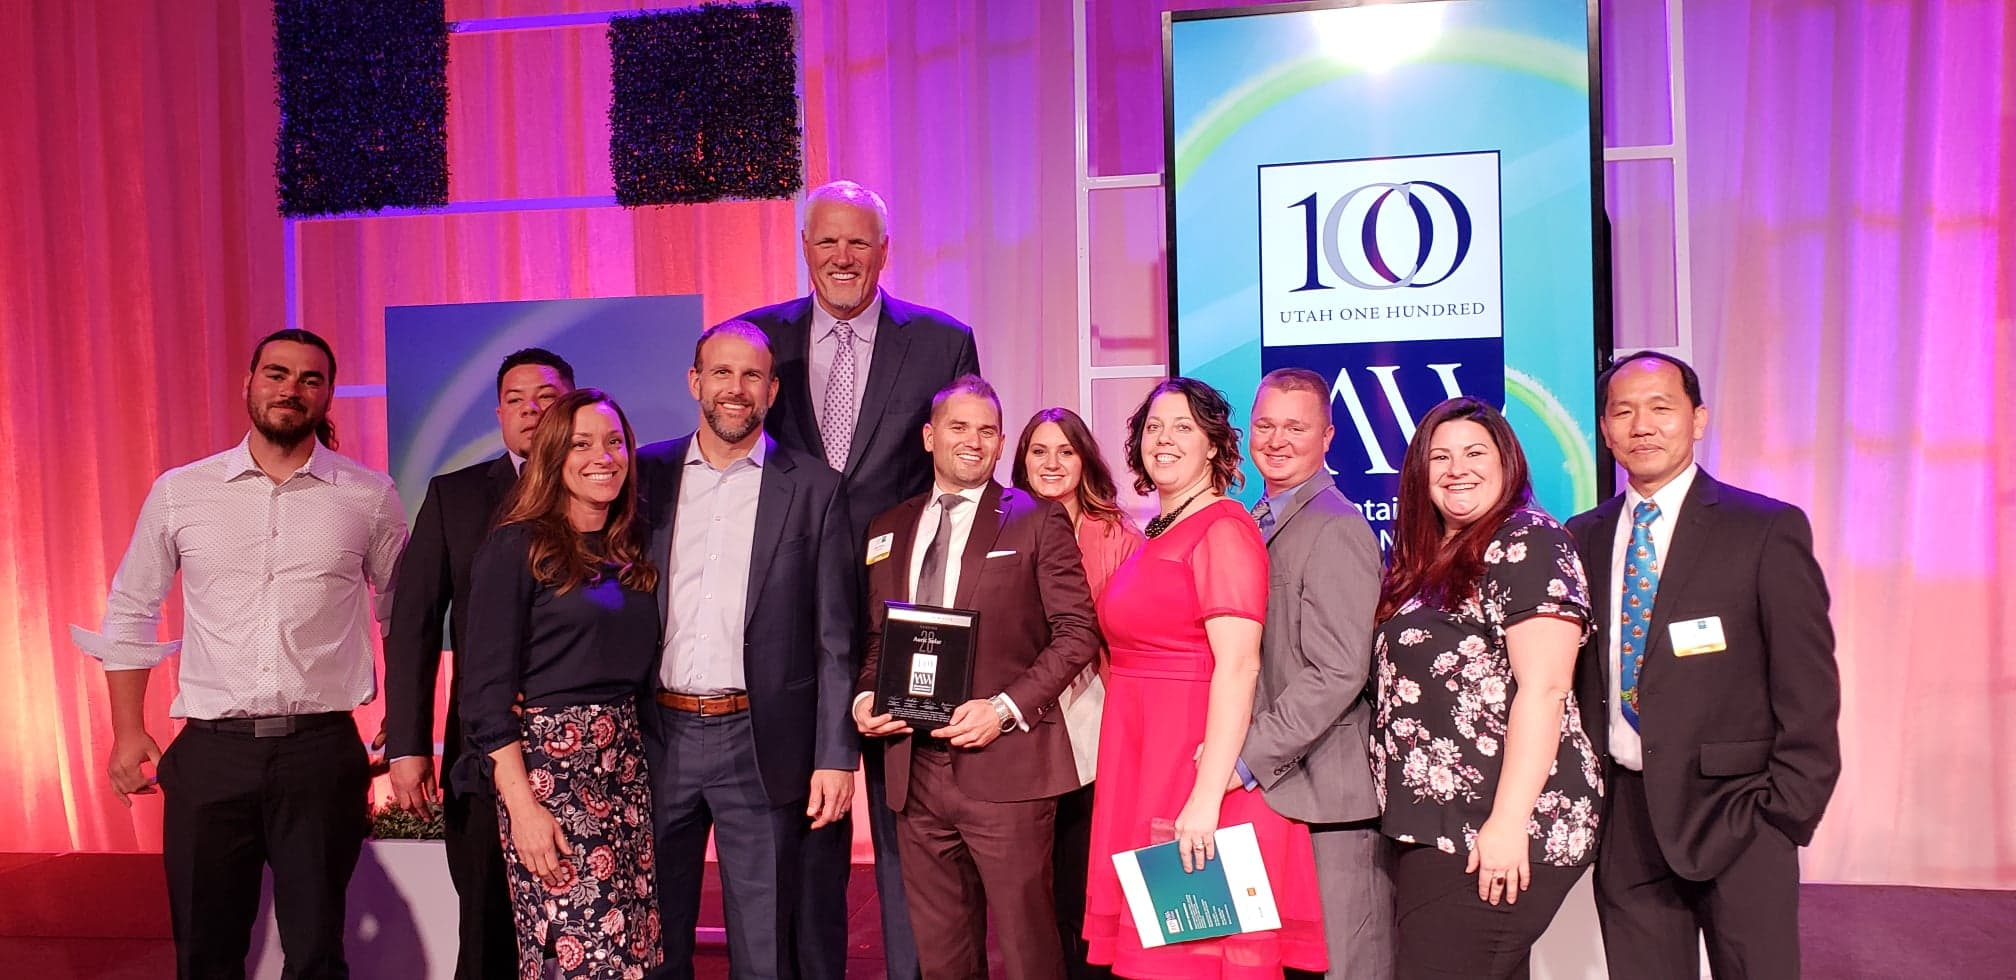 A group of Auric colleagues with the award presented by Mark Eaton, former NBA basketball player for the Utah Jazz.